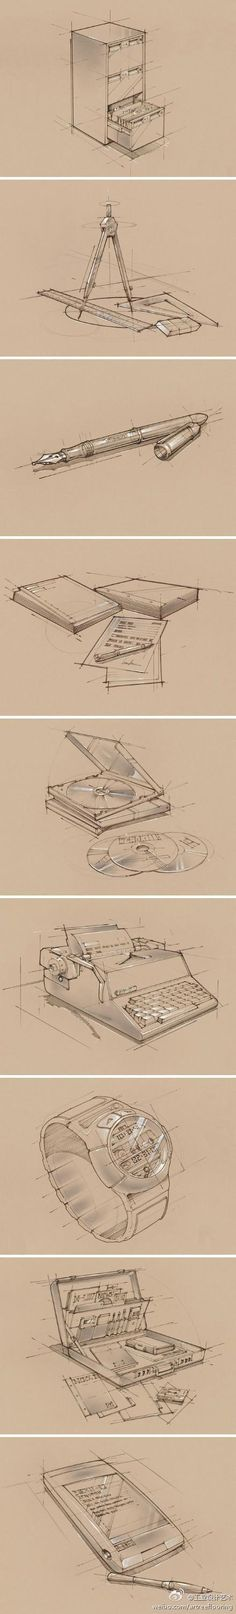 Sketch of office supplies - Industrial design sketches